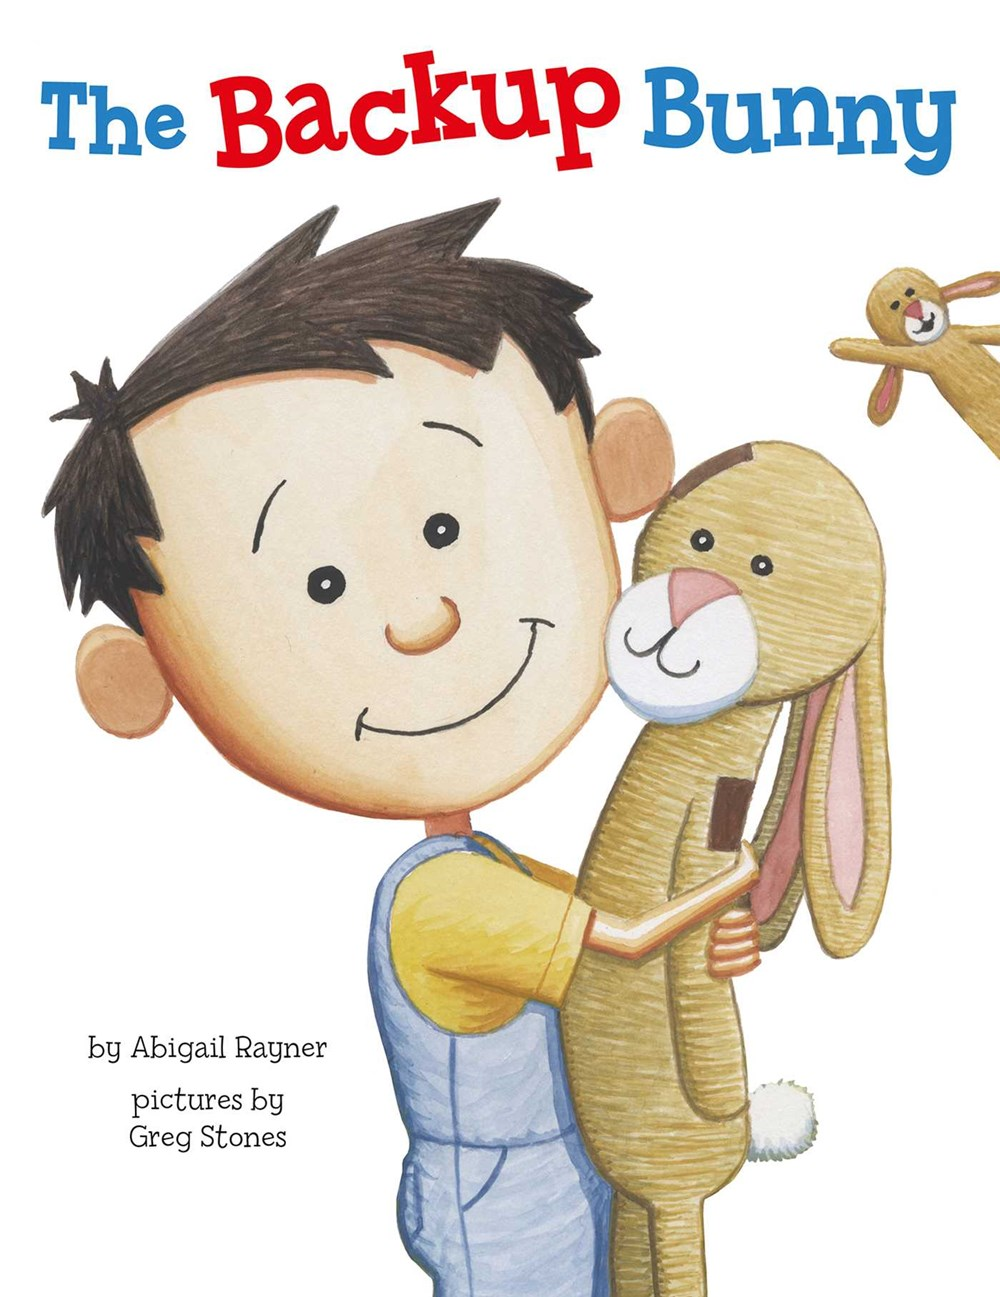 Sunday Story Time with Abigail Rayner (Author of The Backup Bunny)